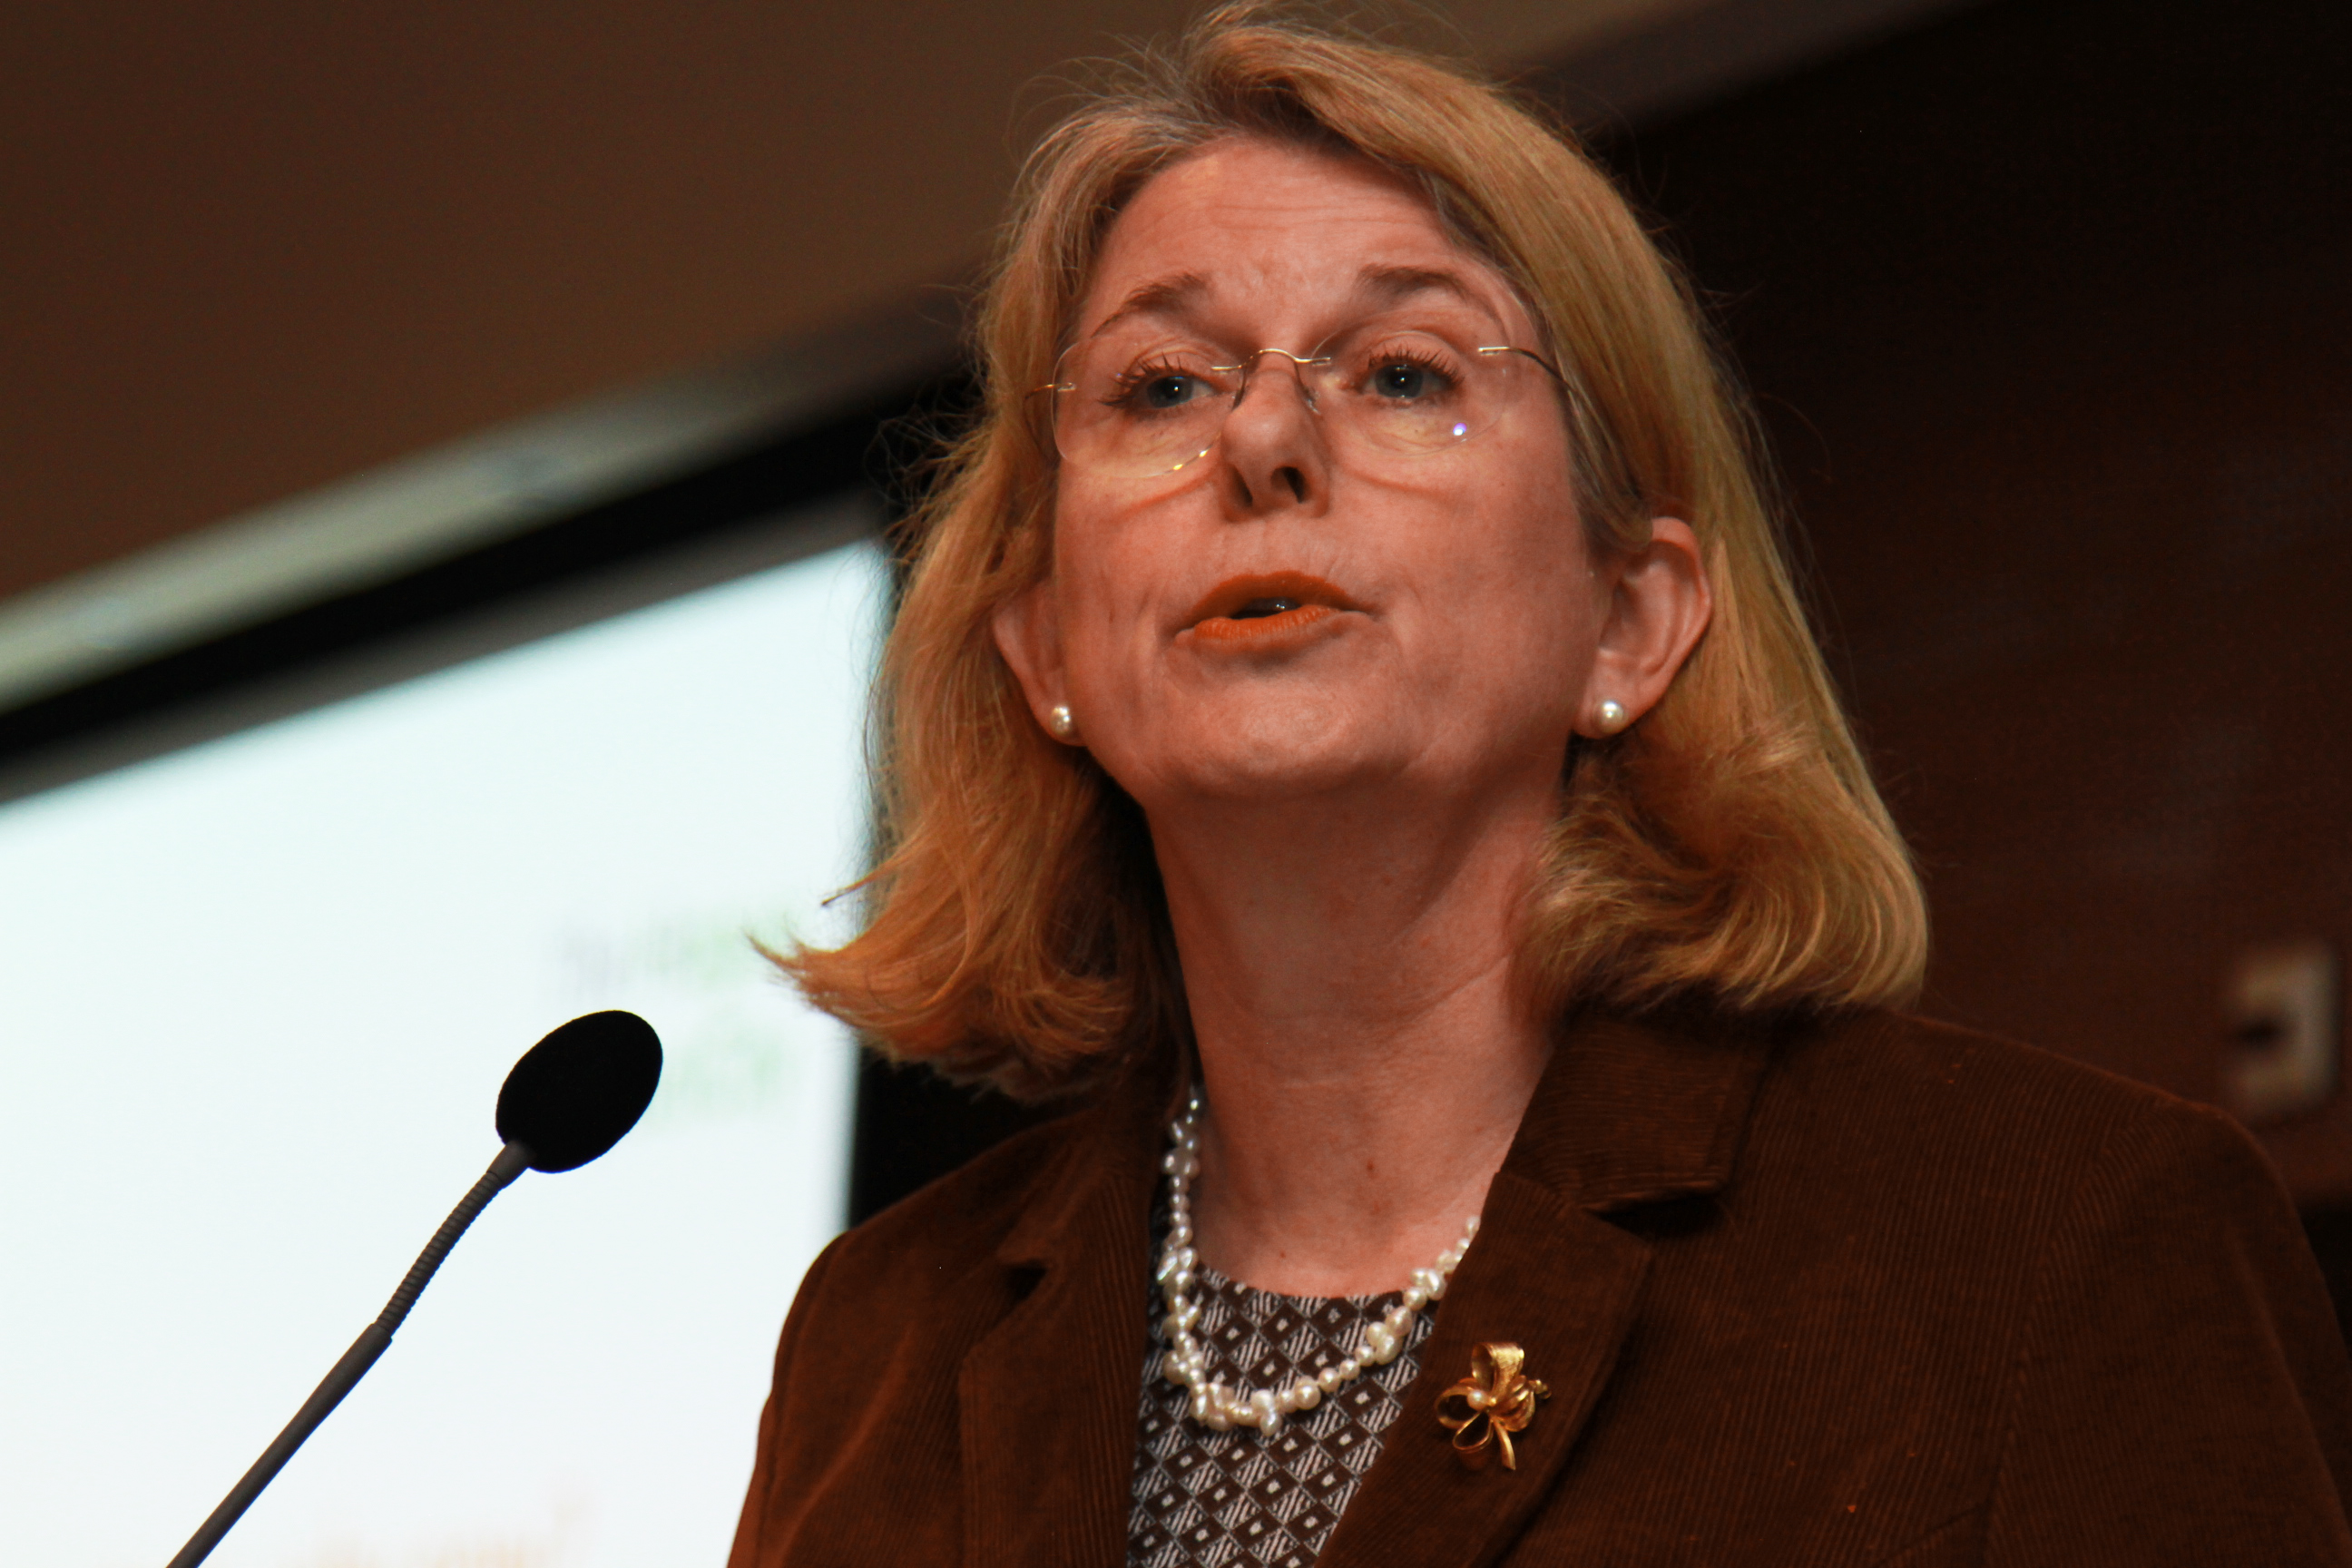 Pauline Krikke Mayor The Hague